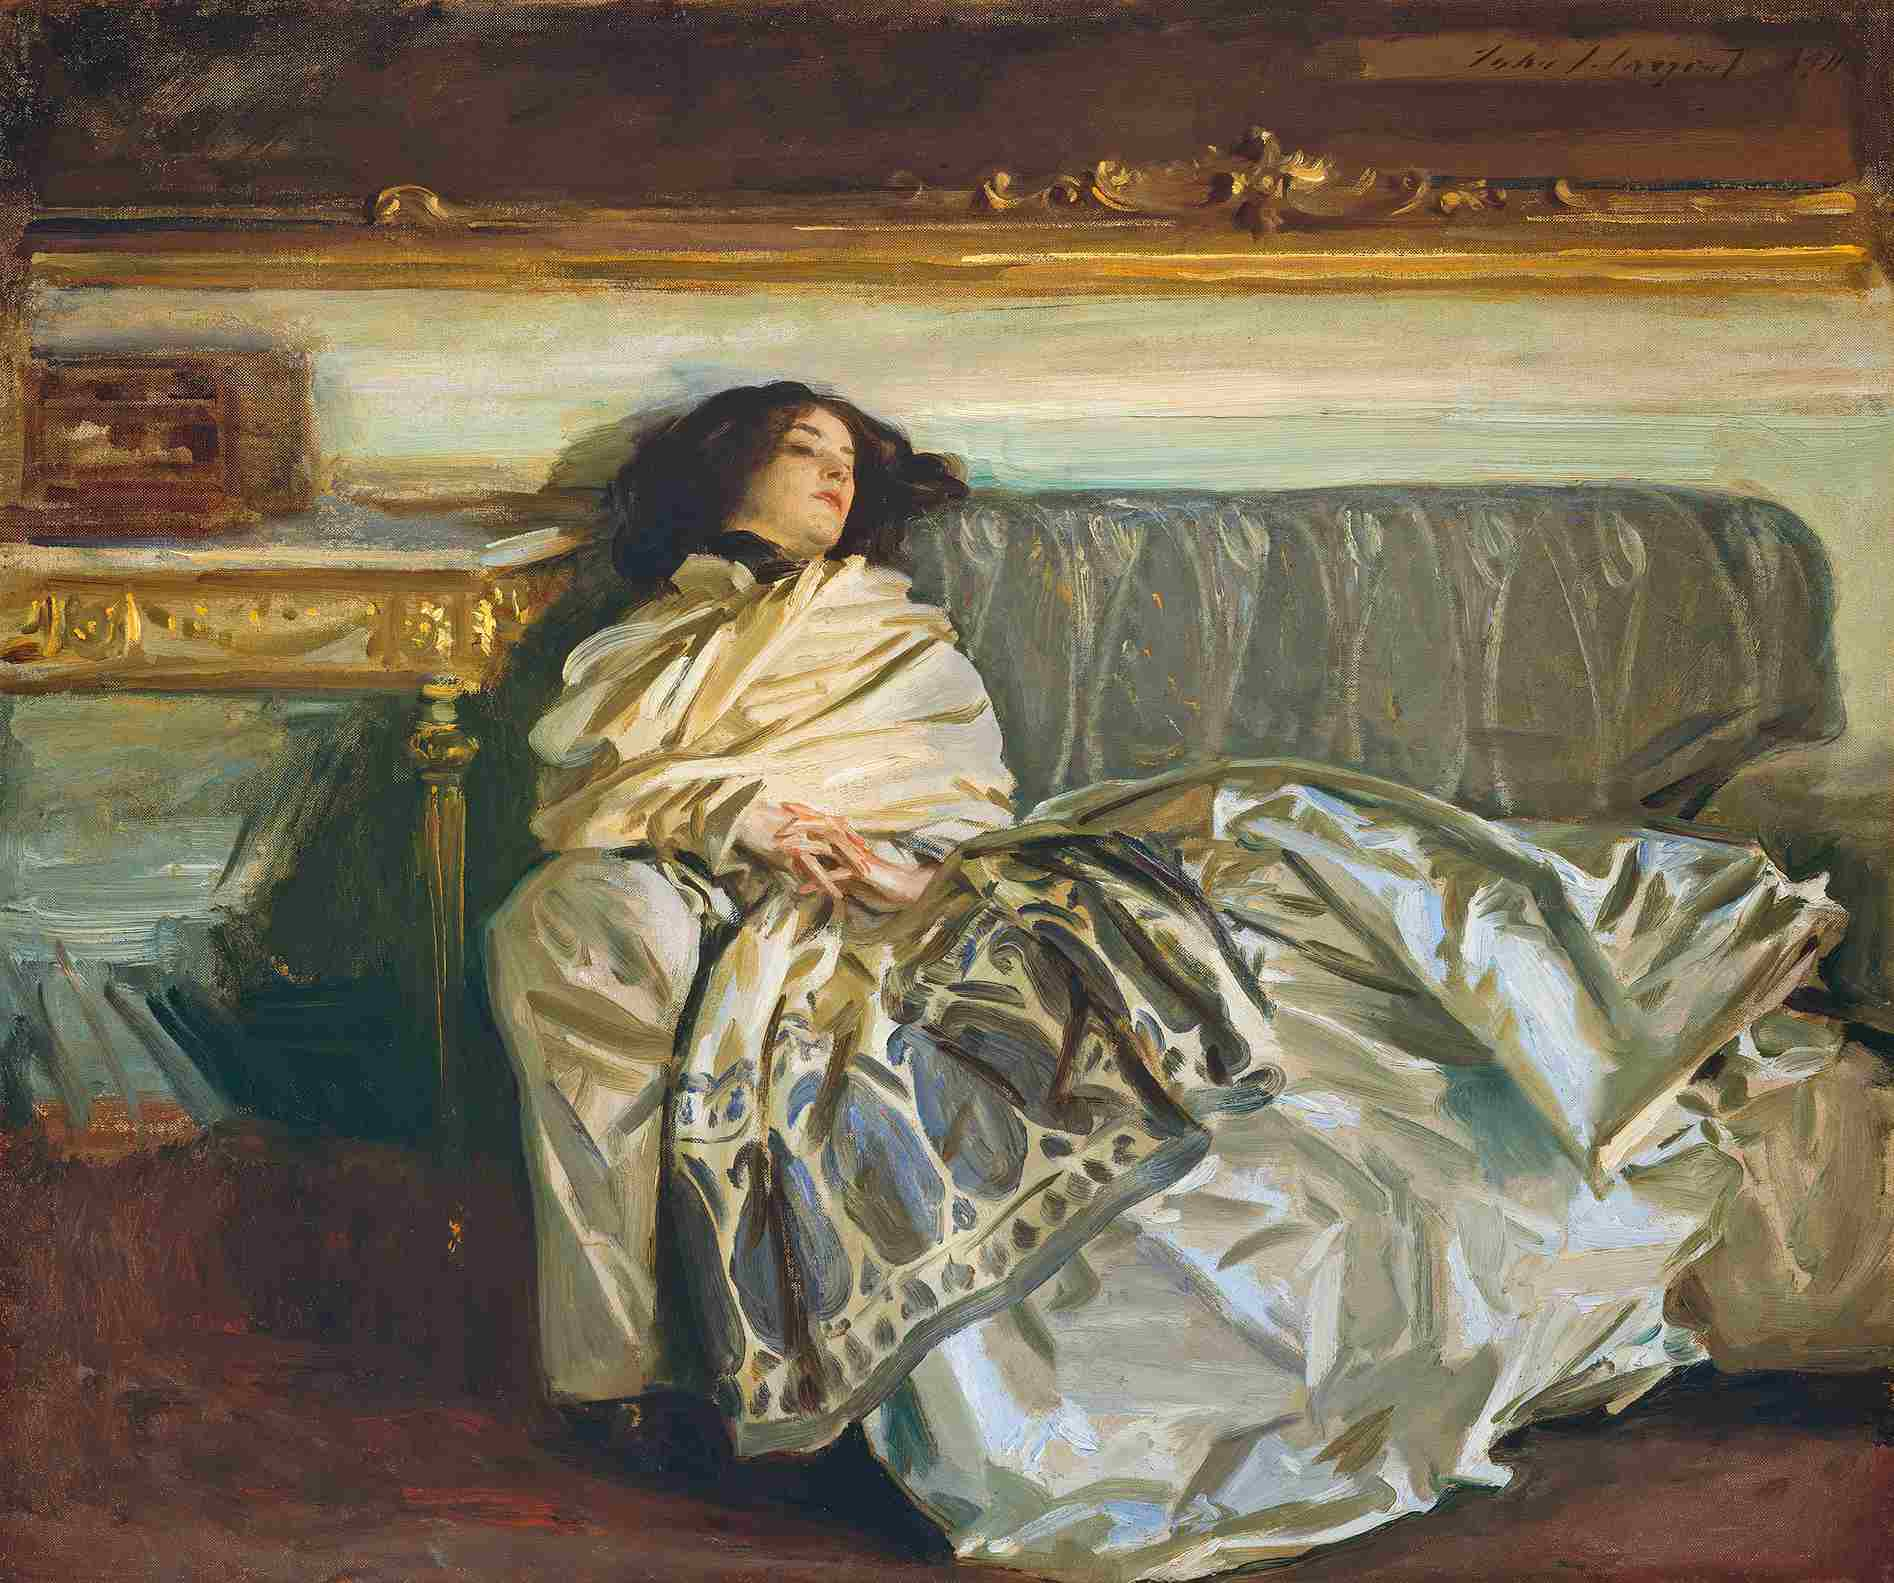 The Life and Art of John Singer Sargent